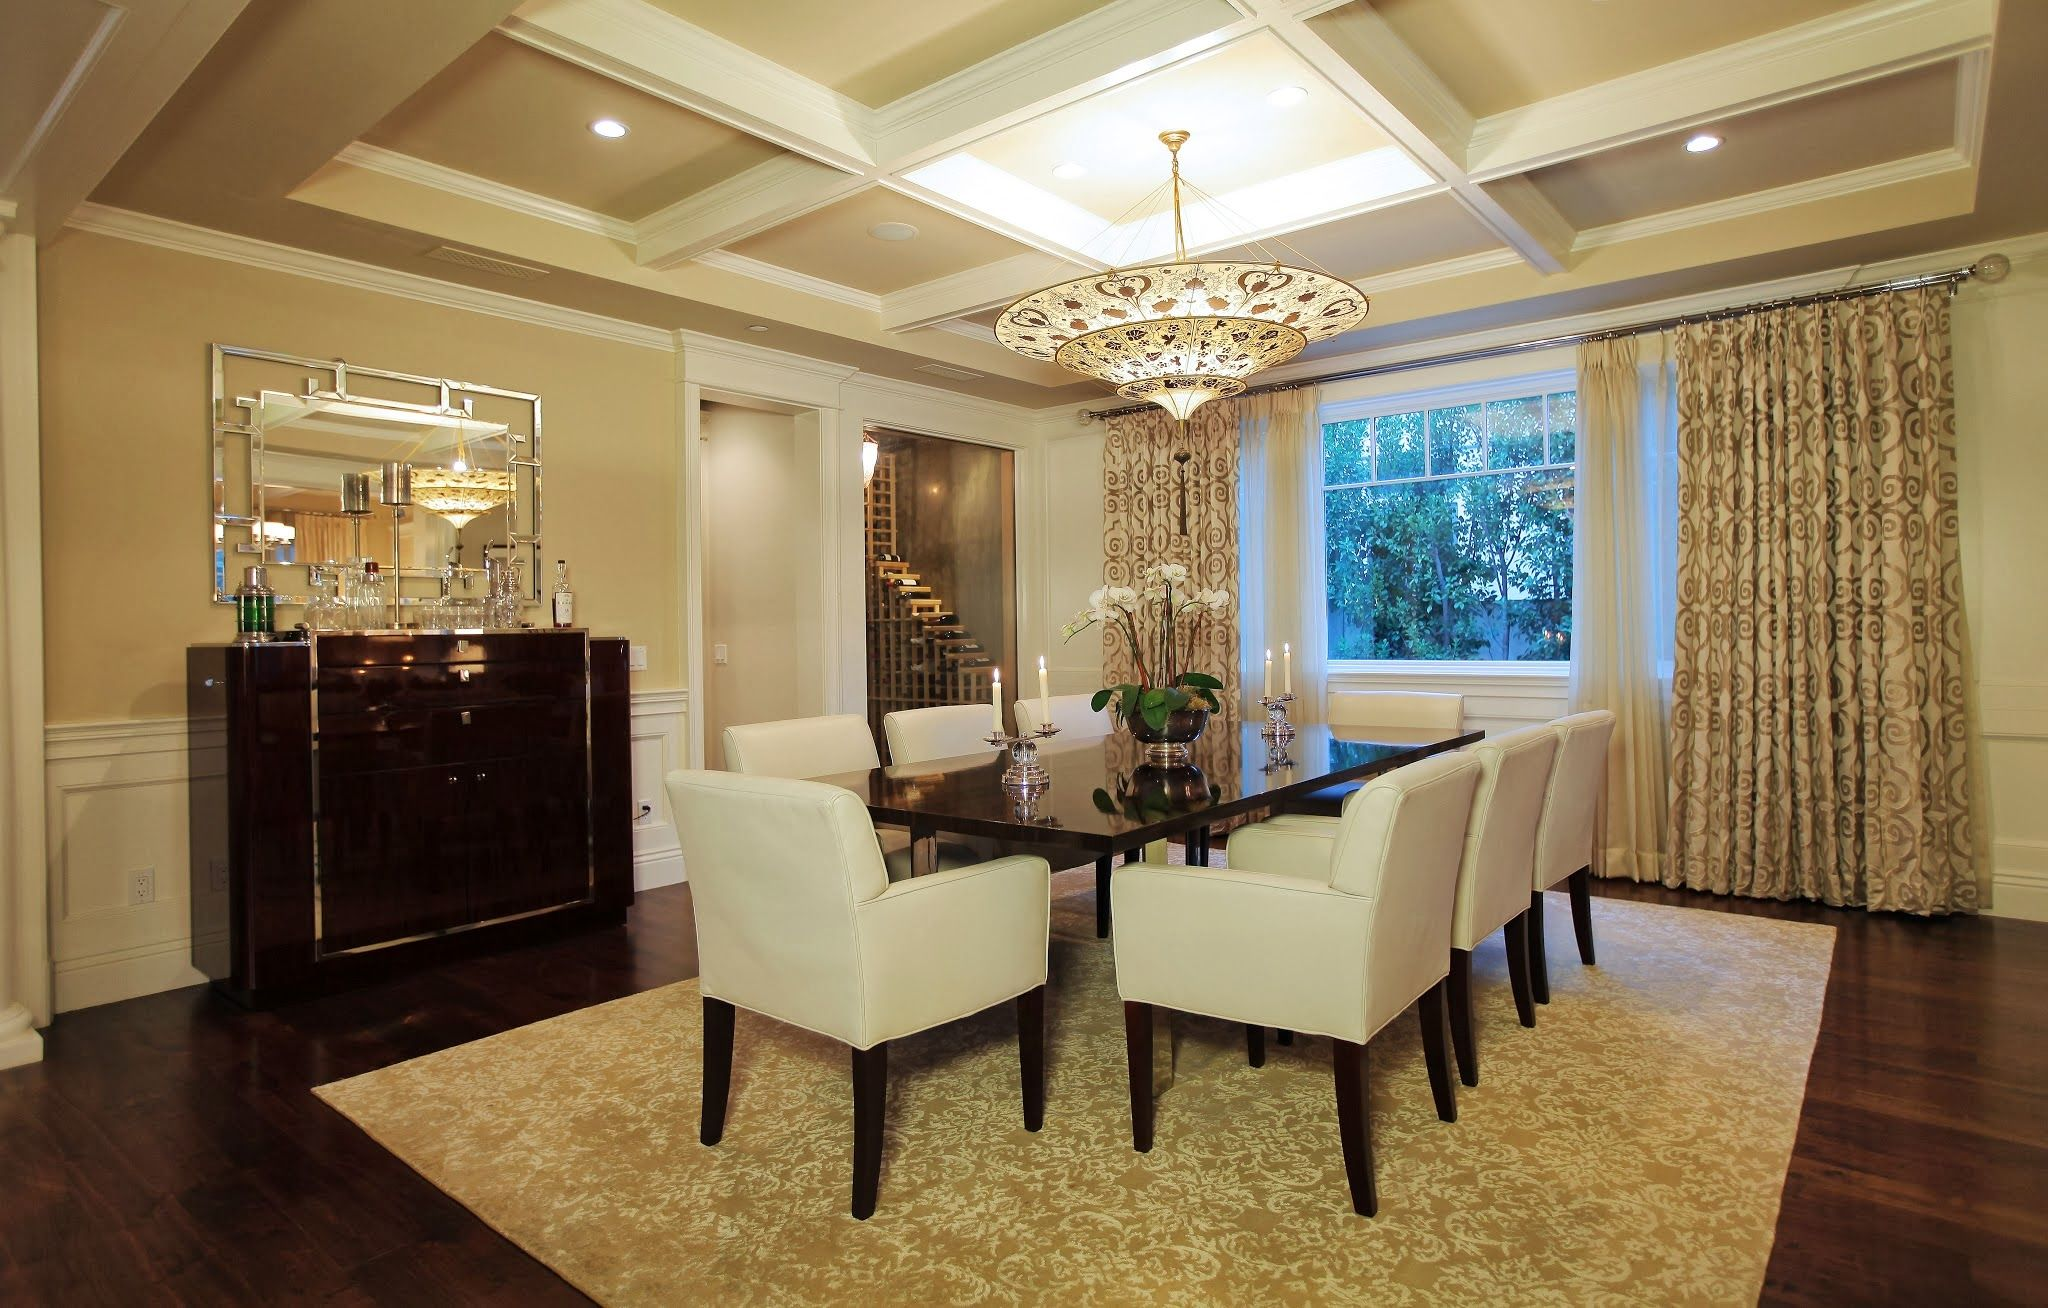 Top ceiling designs for dining room with ideas gorgeous for Stunning dining rooms